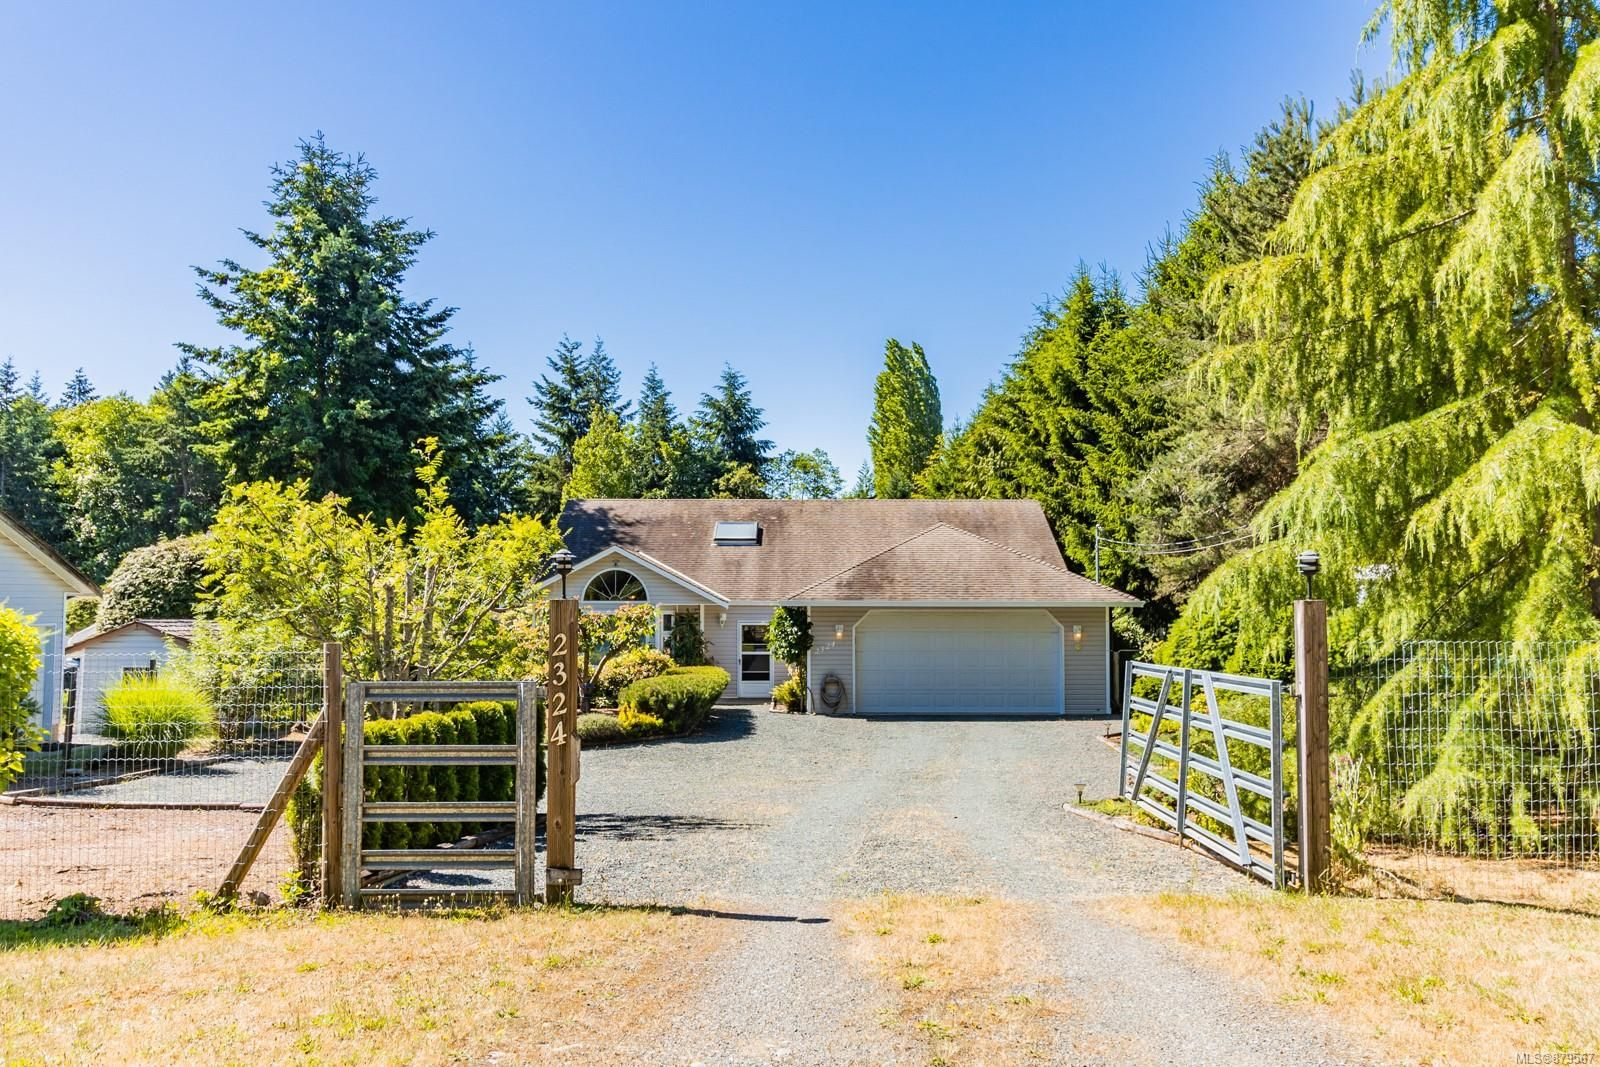 Main Photo: 2324 Nanoose Rd in : PQ Nanoose House for sale (Parksville/Qualicum)  : MLS®# 879567